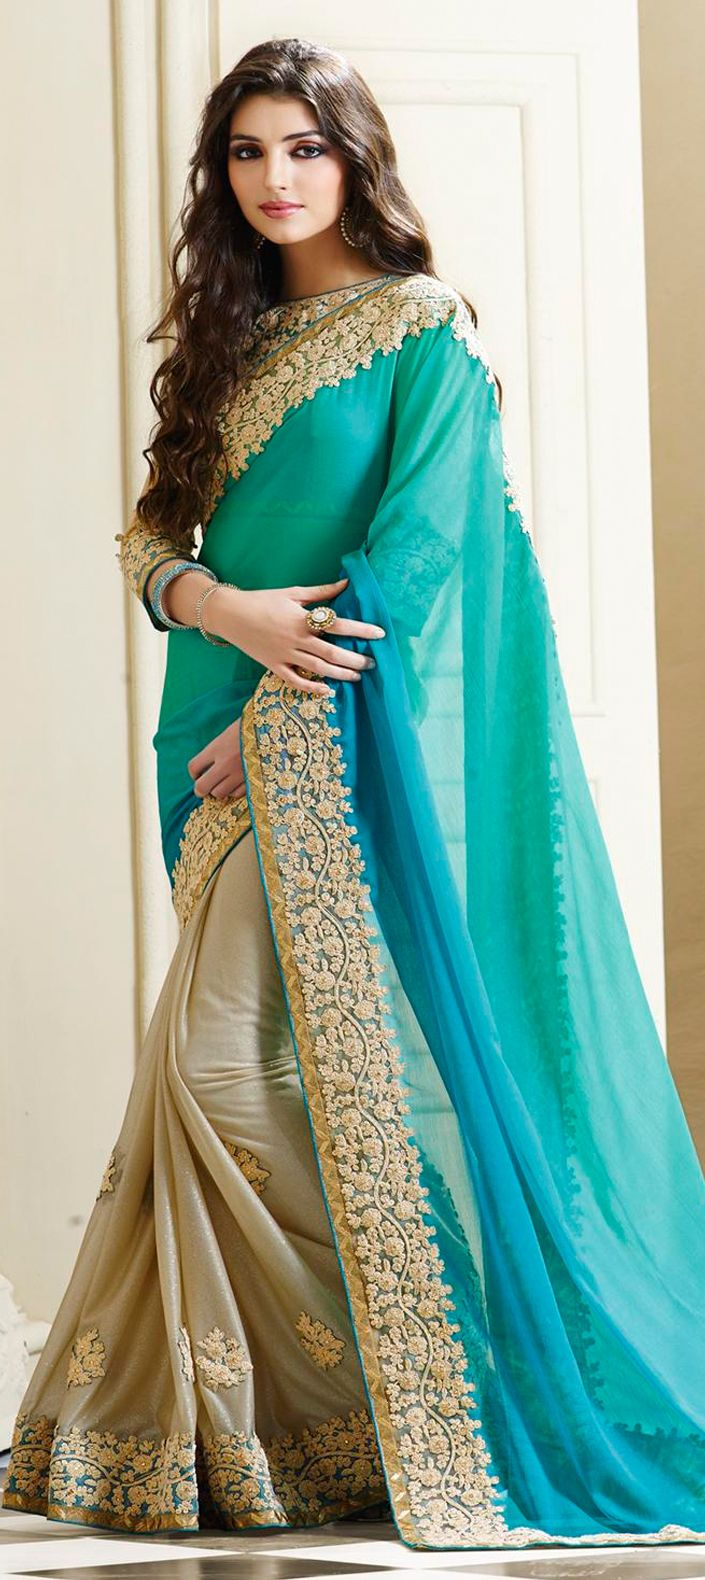 178248: Beige and Brown, Blue color family Embroidered Sarees, Party ...